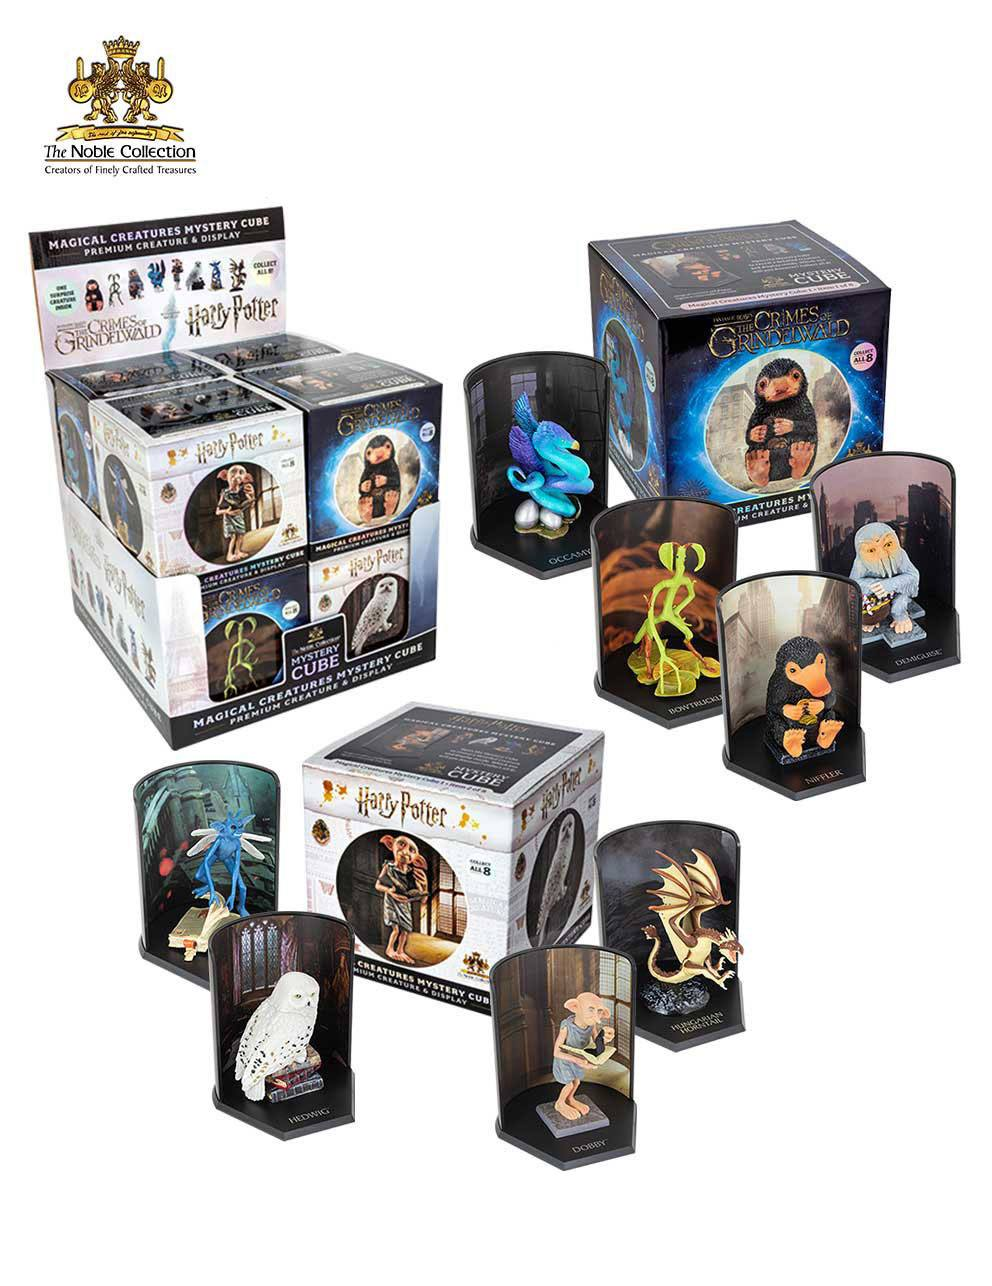 Harry Potter / Fantastic Beasts Magical Creatures Mystery Cube Statues 9 cm Display (8)